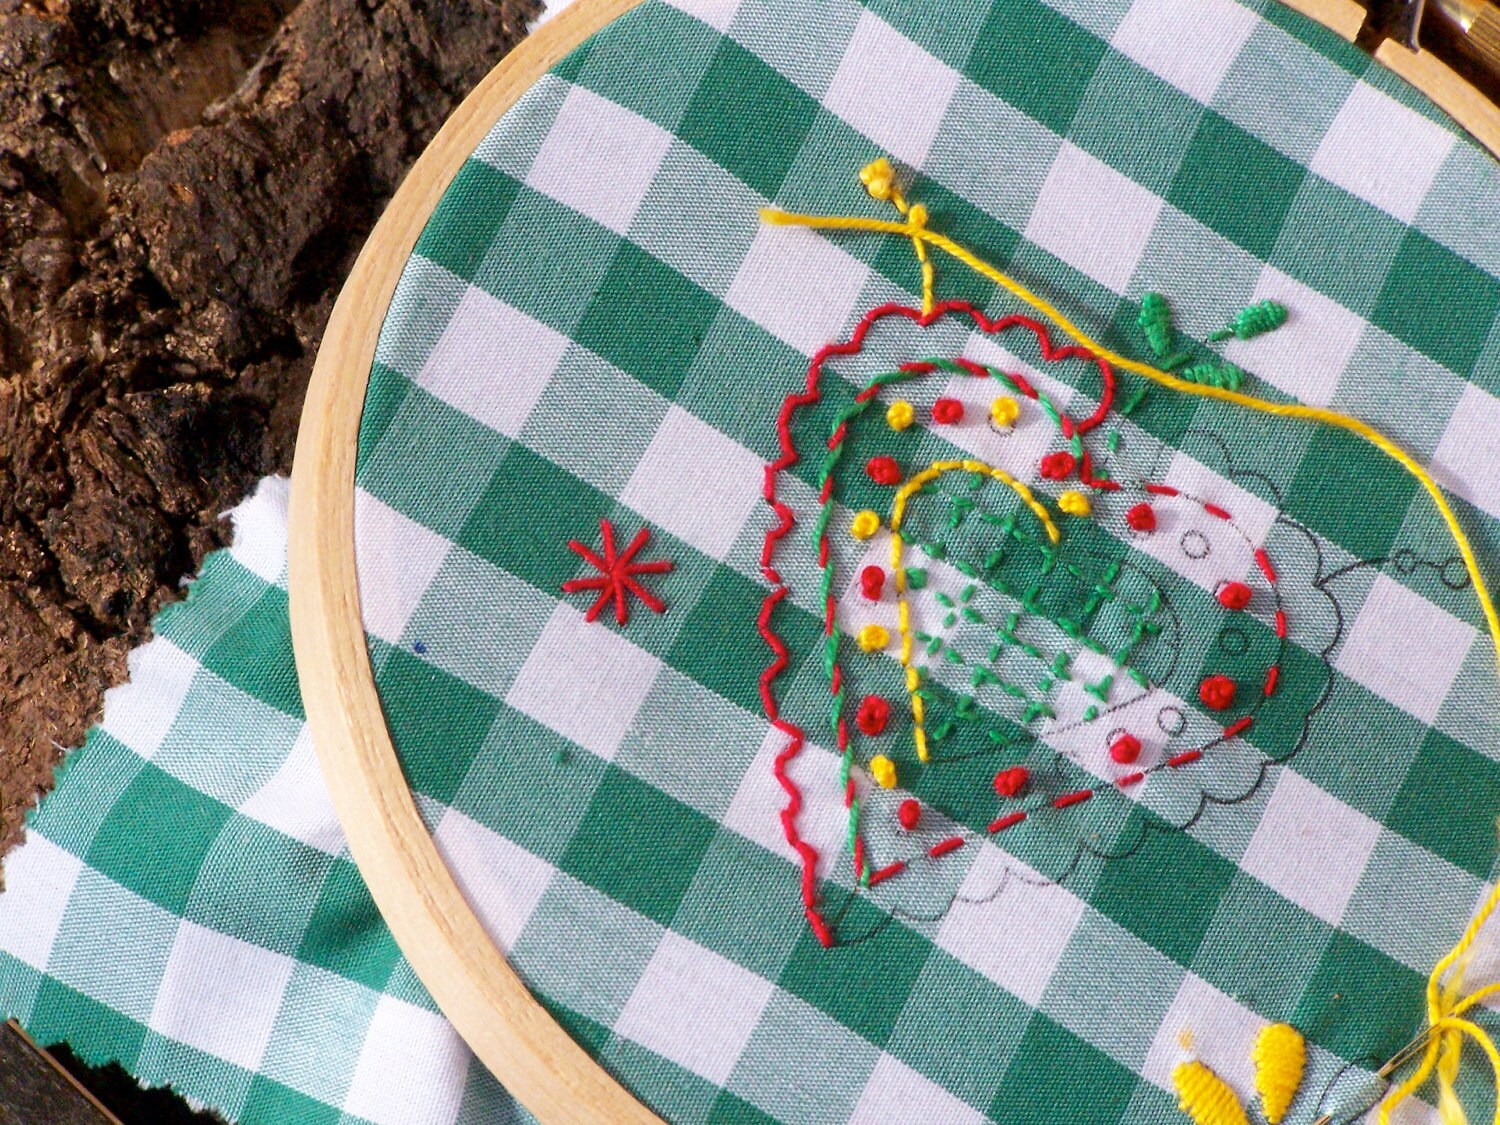 Hand Embroidery pattern, heart design from Portugal hand stamped, green or blue and white gingham fabric, embroidery floss, needle, Viana - agulhanaopica